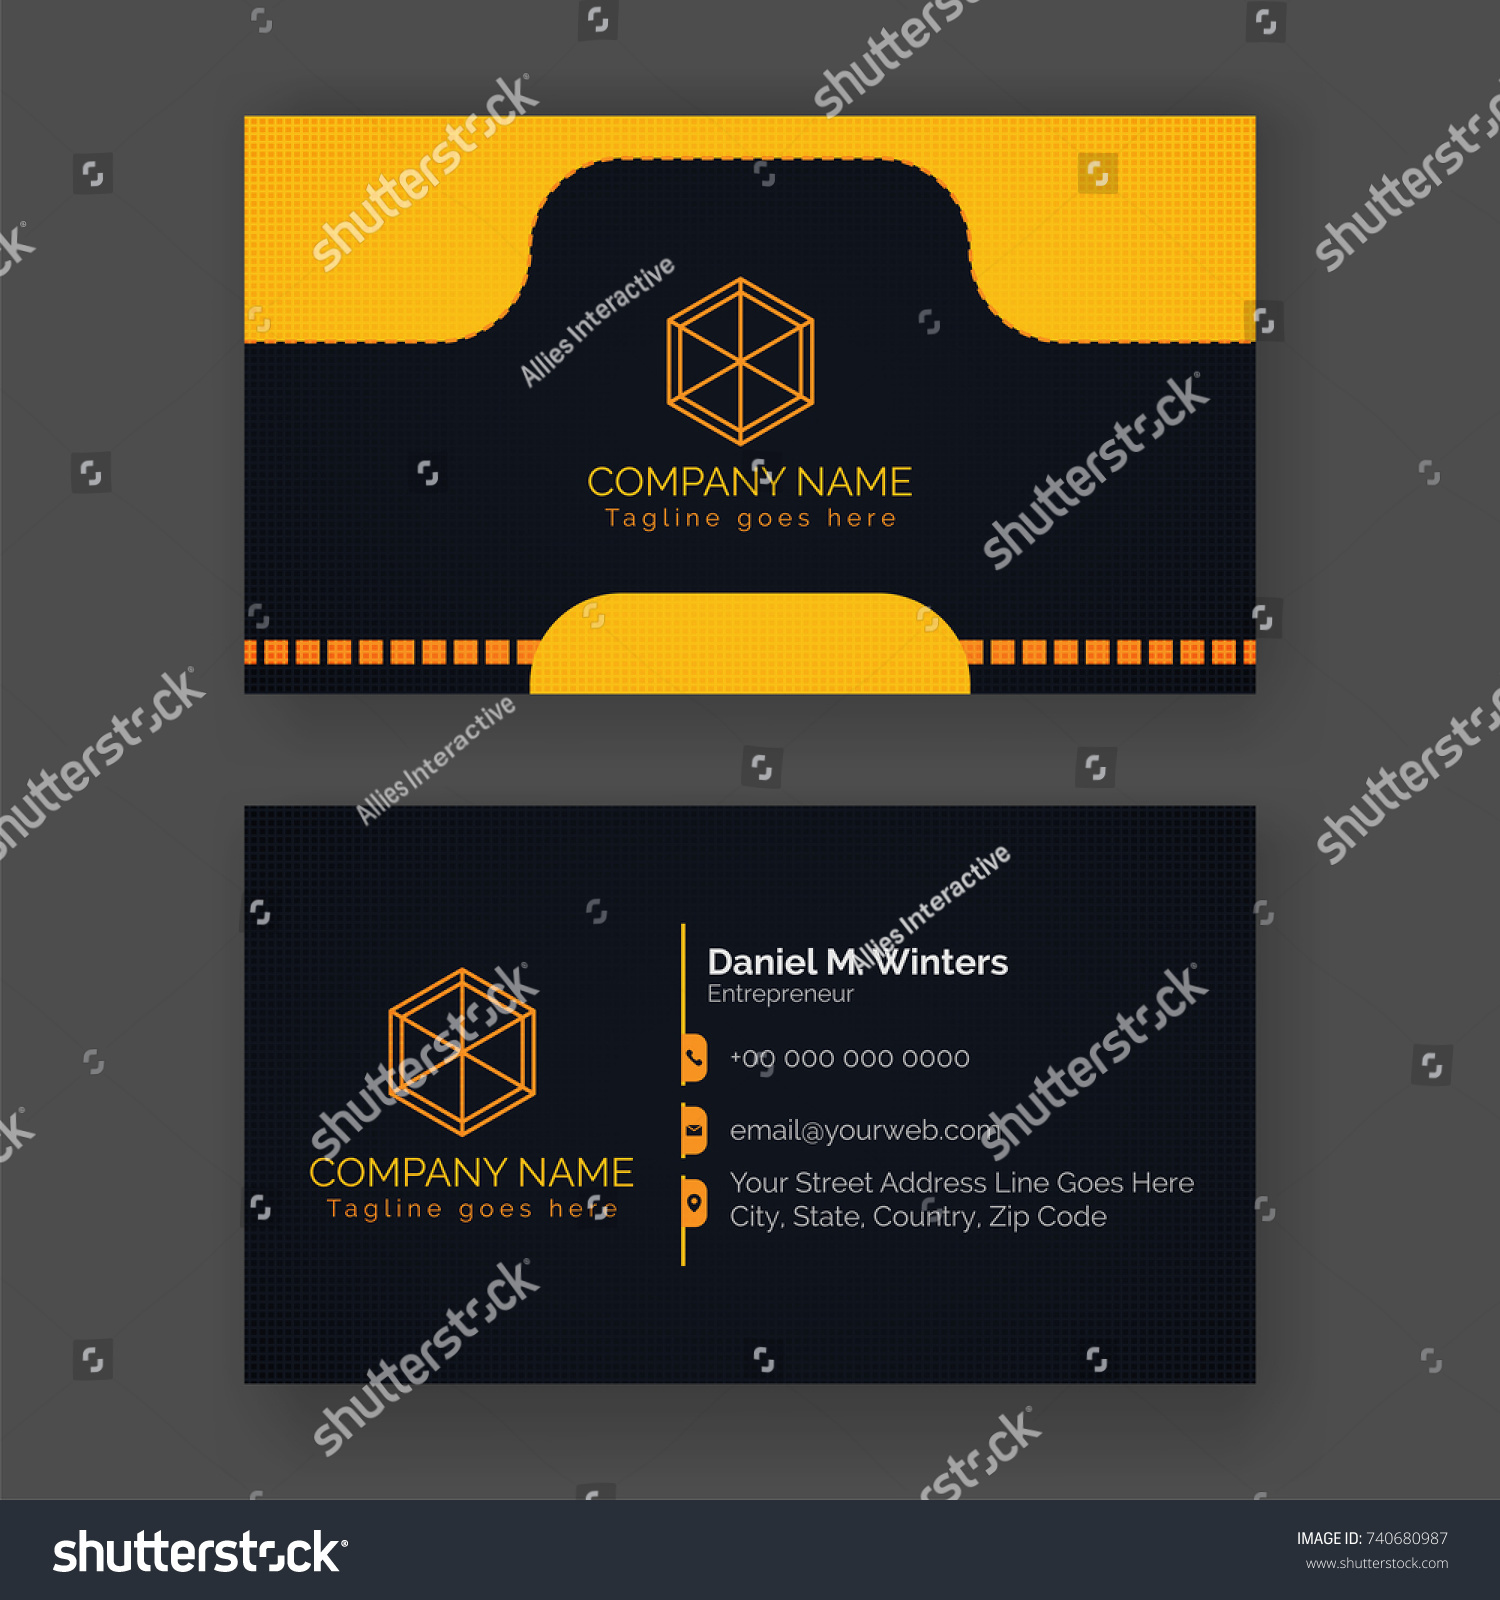 Front back view business card yellow stock vector 740680987 front and back view of business card in yellow and black color combination colourmoves Choice Image